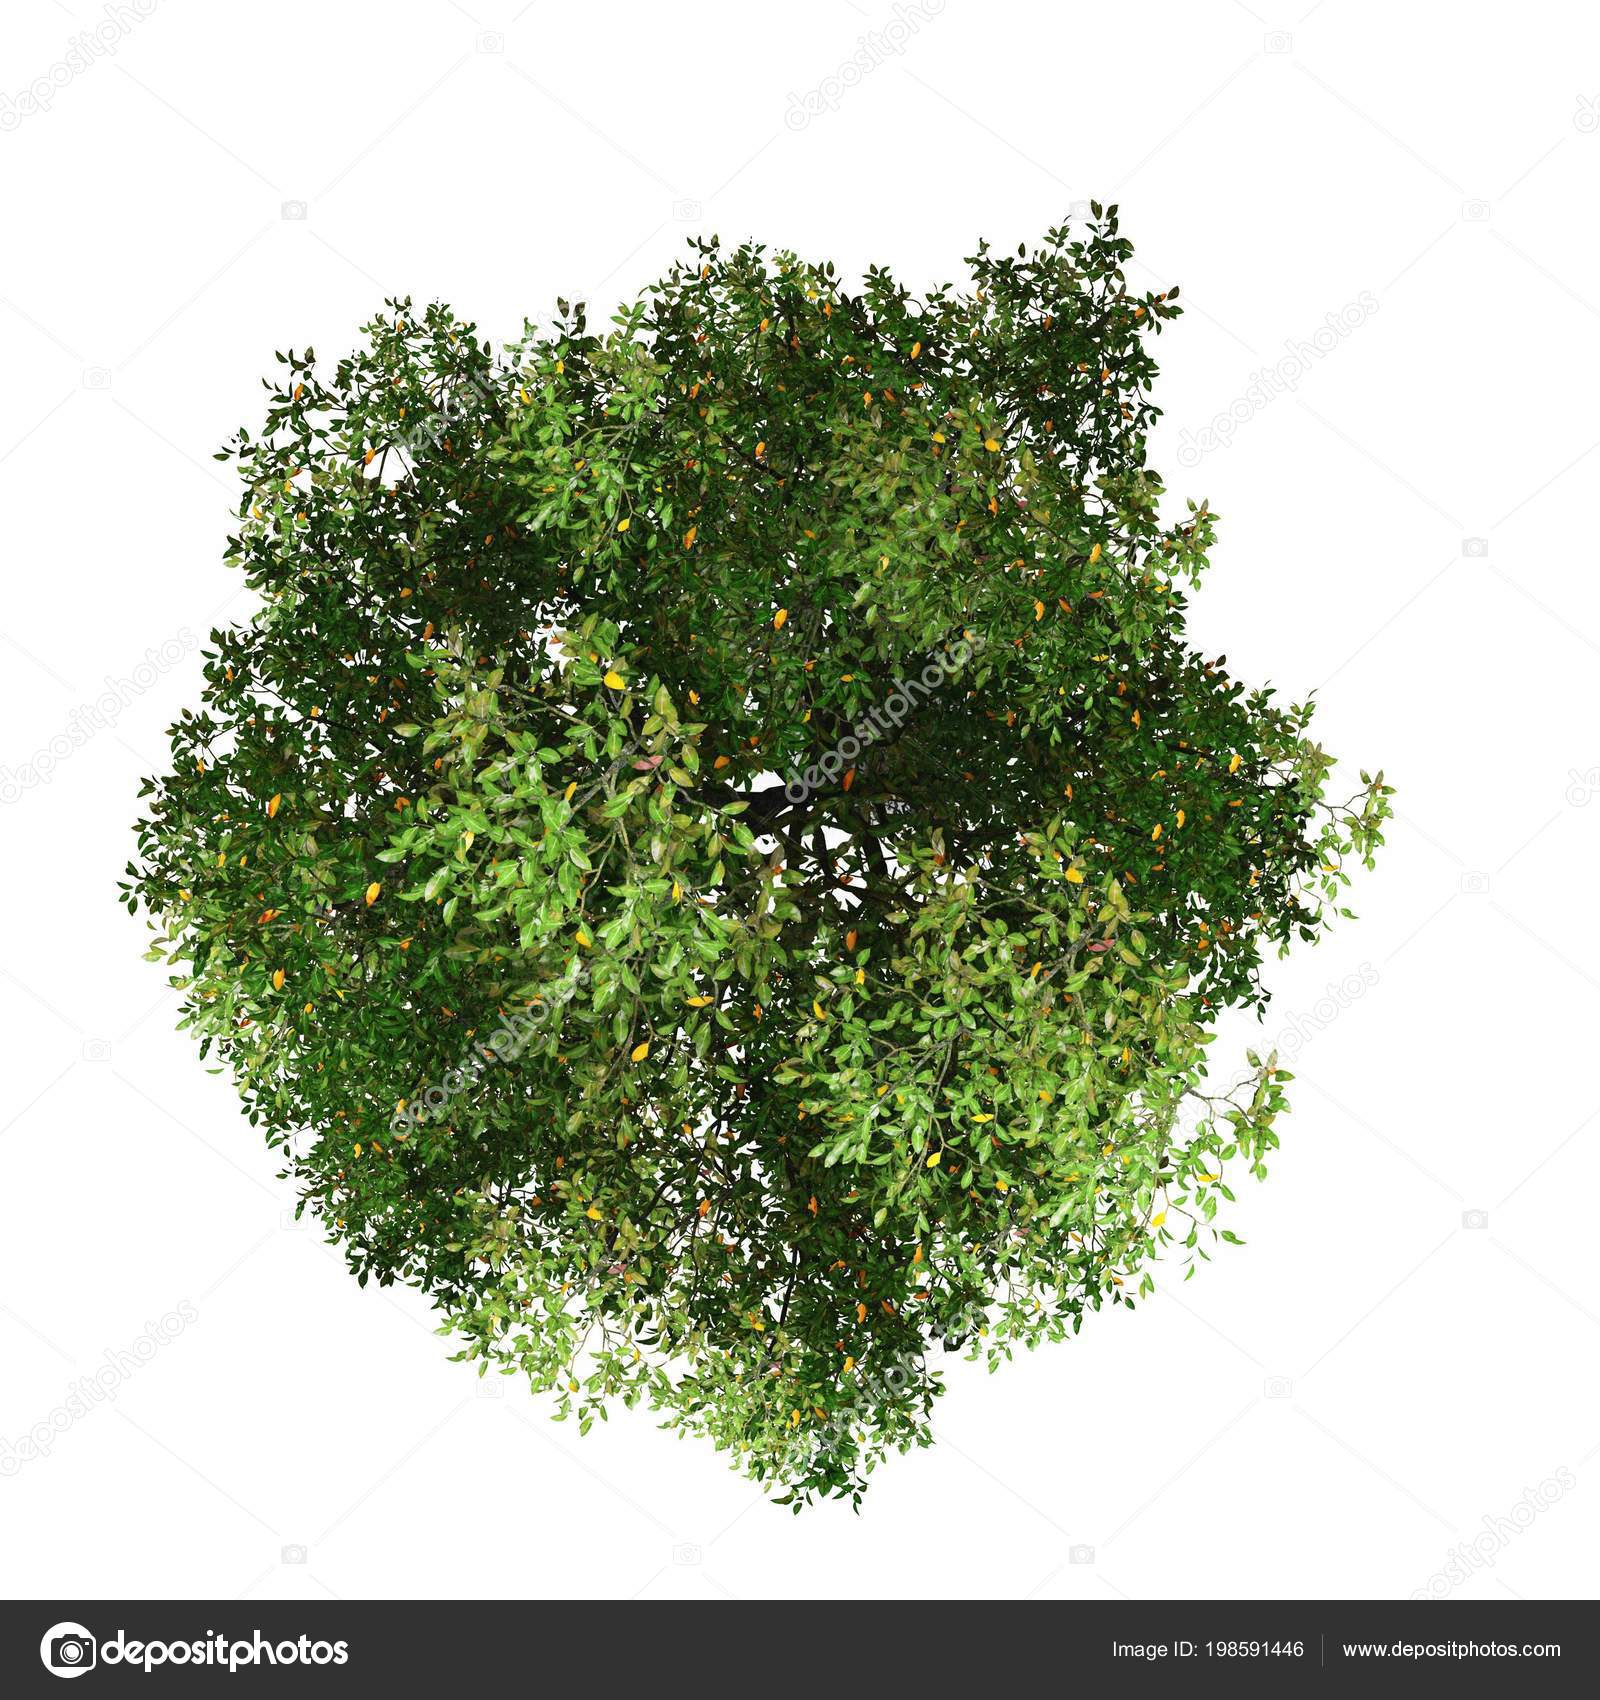 tree top view white background stock photo c chayathon 198591446 https depositphotos com 198591446 stock photo tree top view white background html